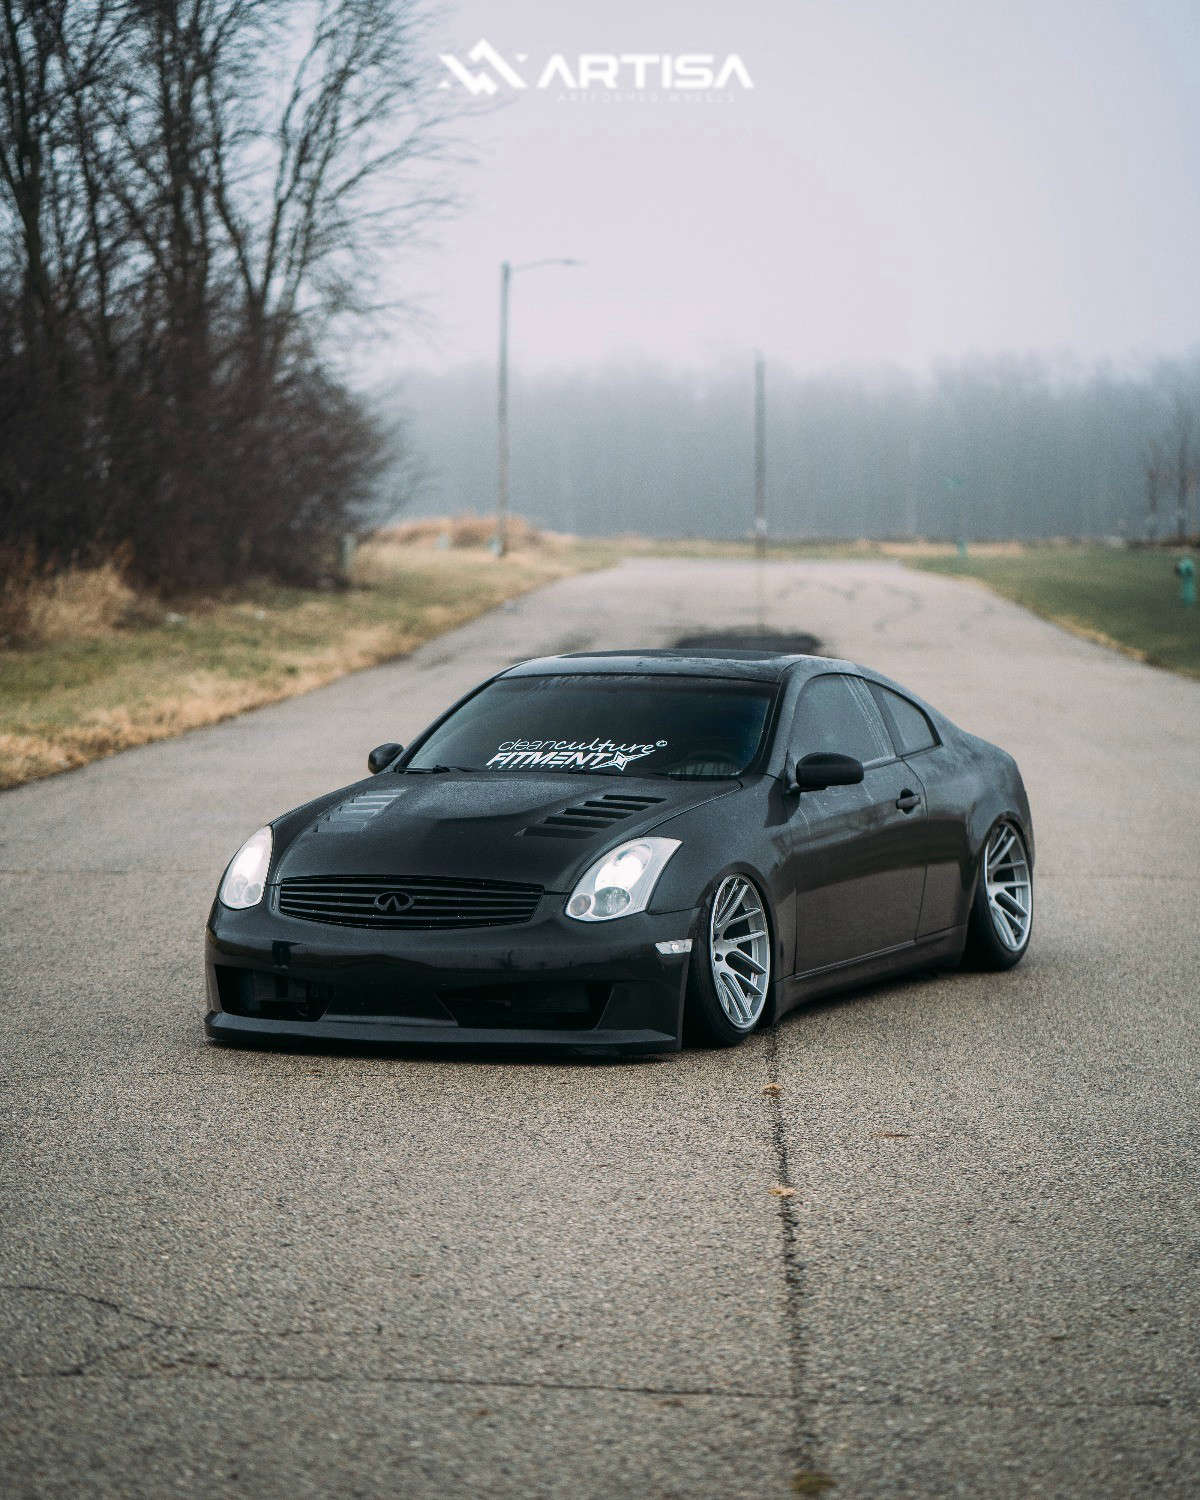 11 2004 G35 Infiniti Rwd 2dr Coupe W Leather 35l 6cyl 6m Air Lift Performance Air Suspension Artisa Elder Silver